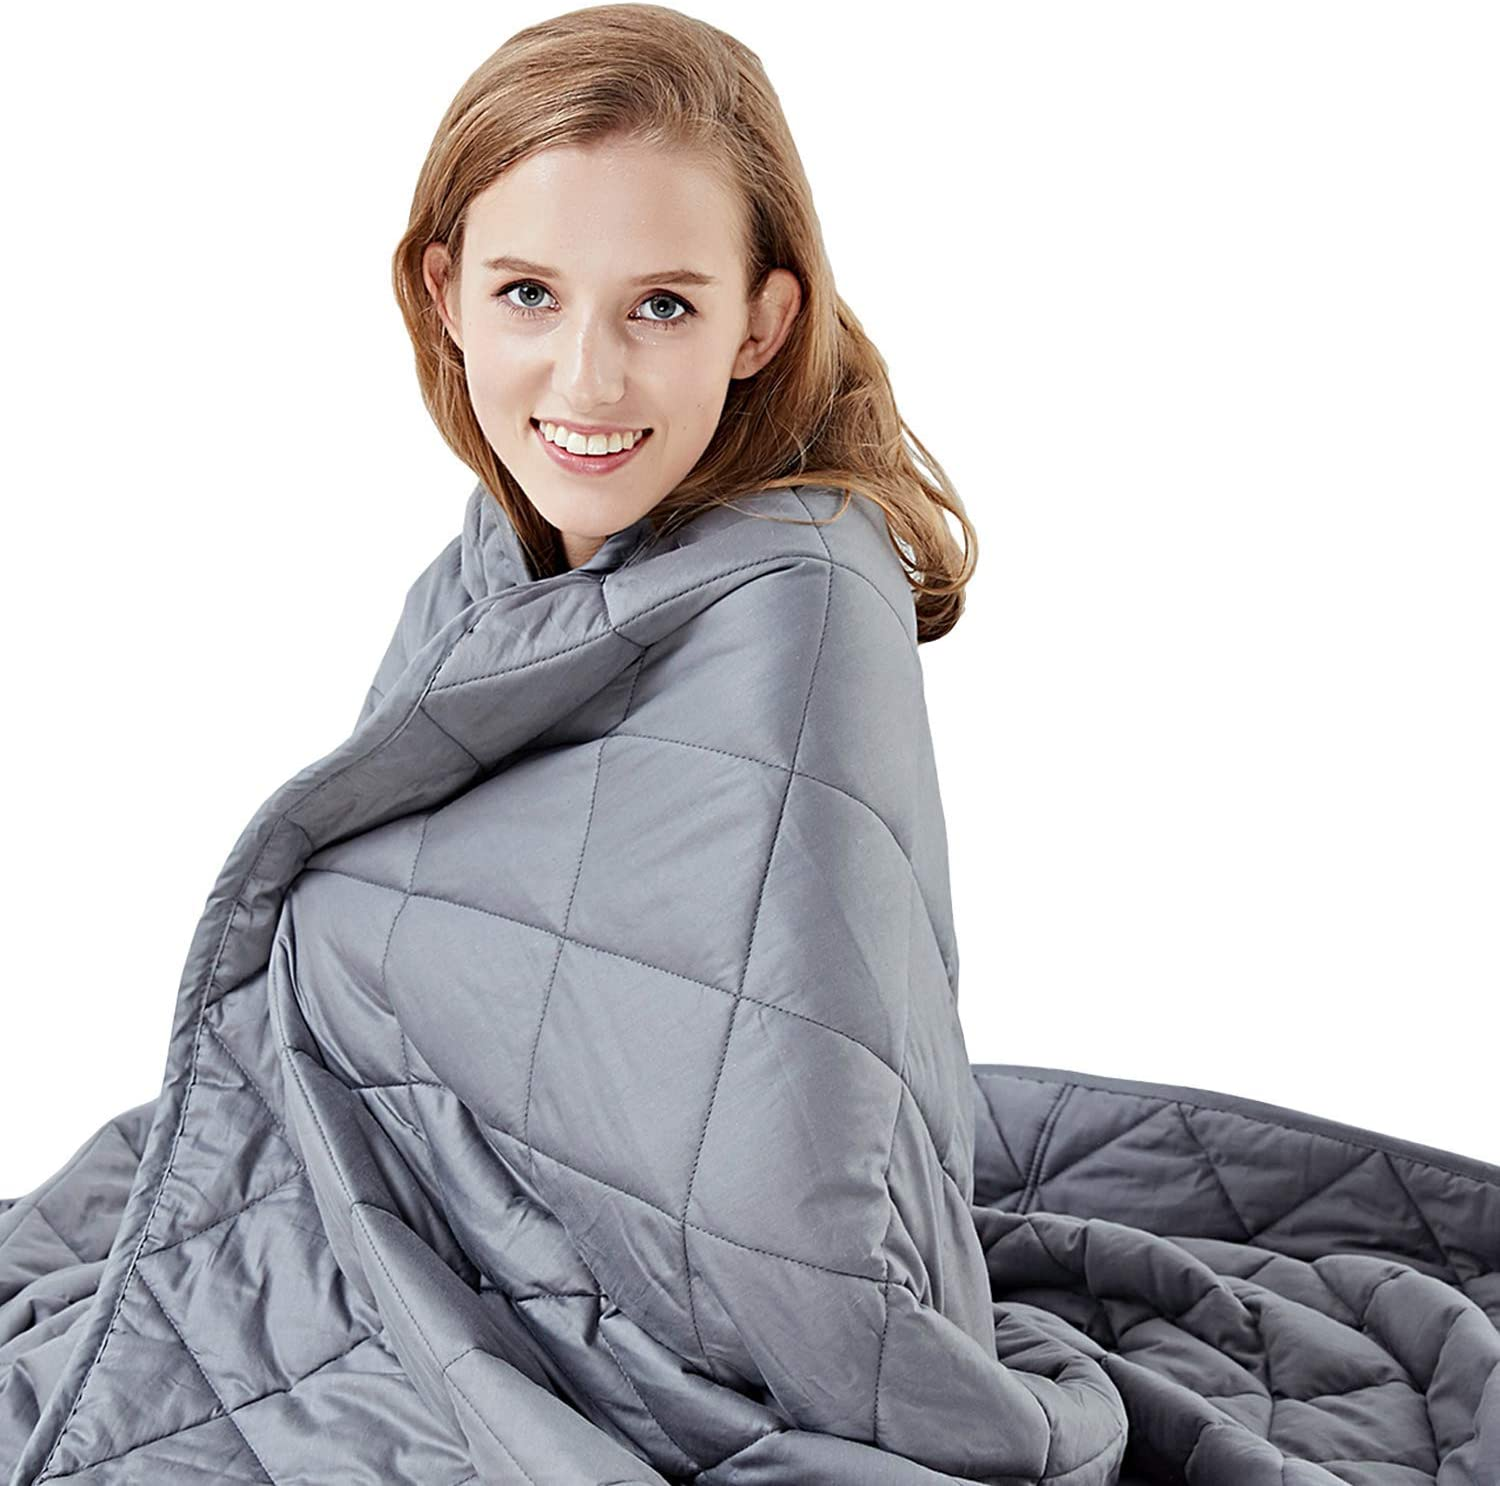 """Hypnoser Weighted Blanket (12 lbs, 60""""x80"""") for Kids, Adults   2.0 Diamond Weight Pocket Heavy Blanket   100% Breathable Material with Glass Beads"""